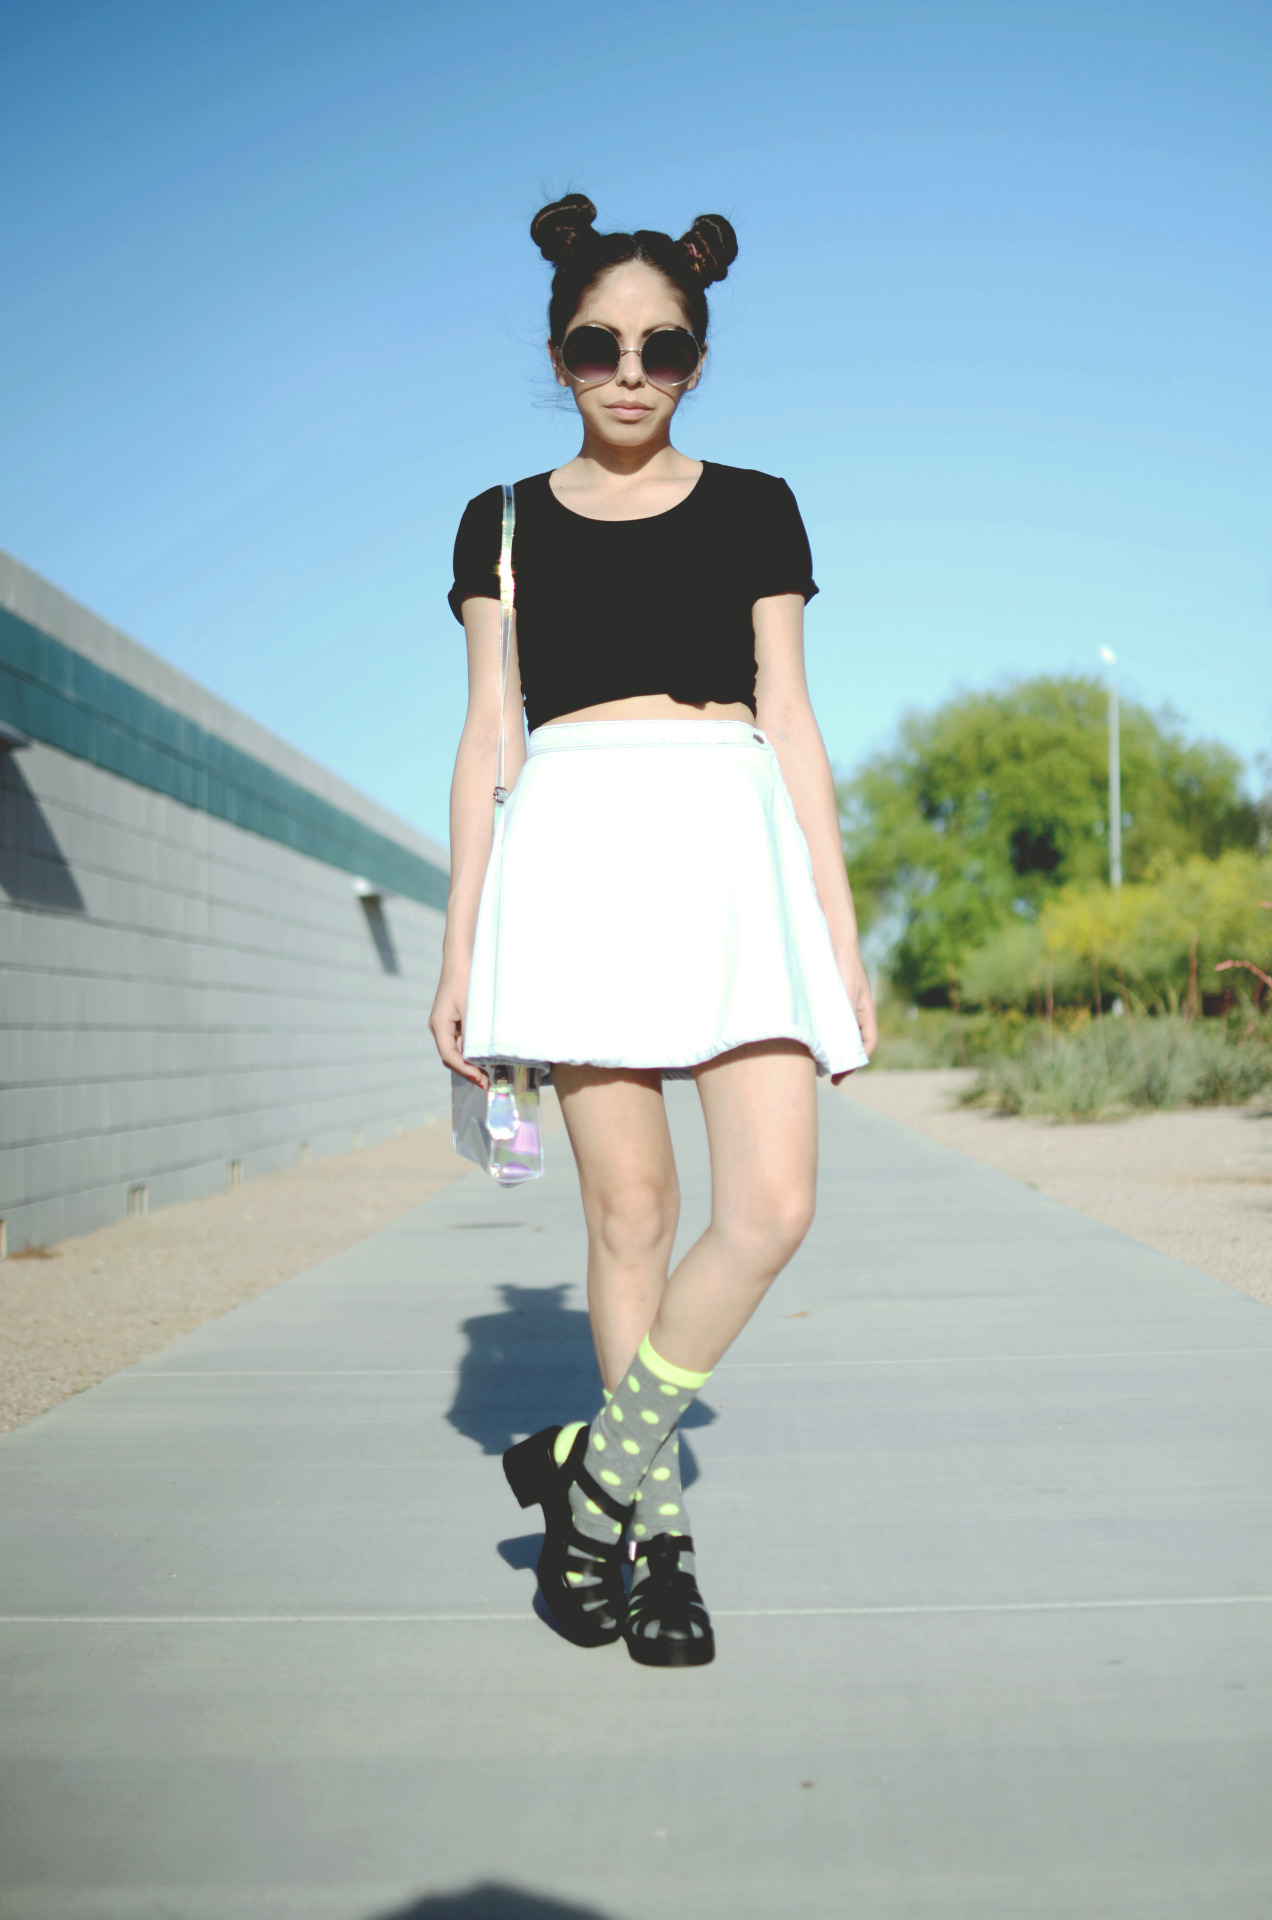 orangemilkpeel:  Outfit of the day: thrifted top, aa circle skirt, f21 socks, aldo sandals